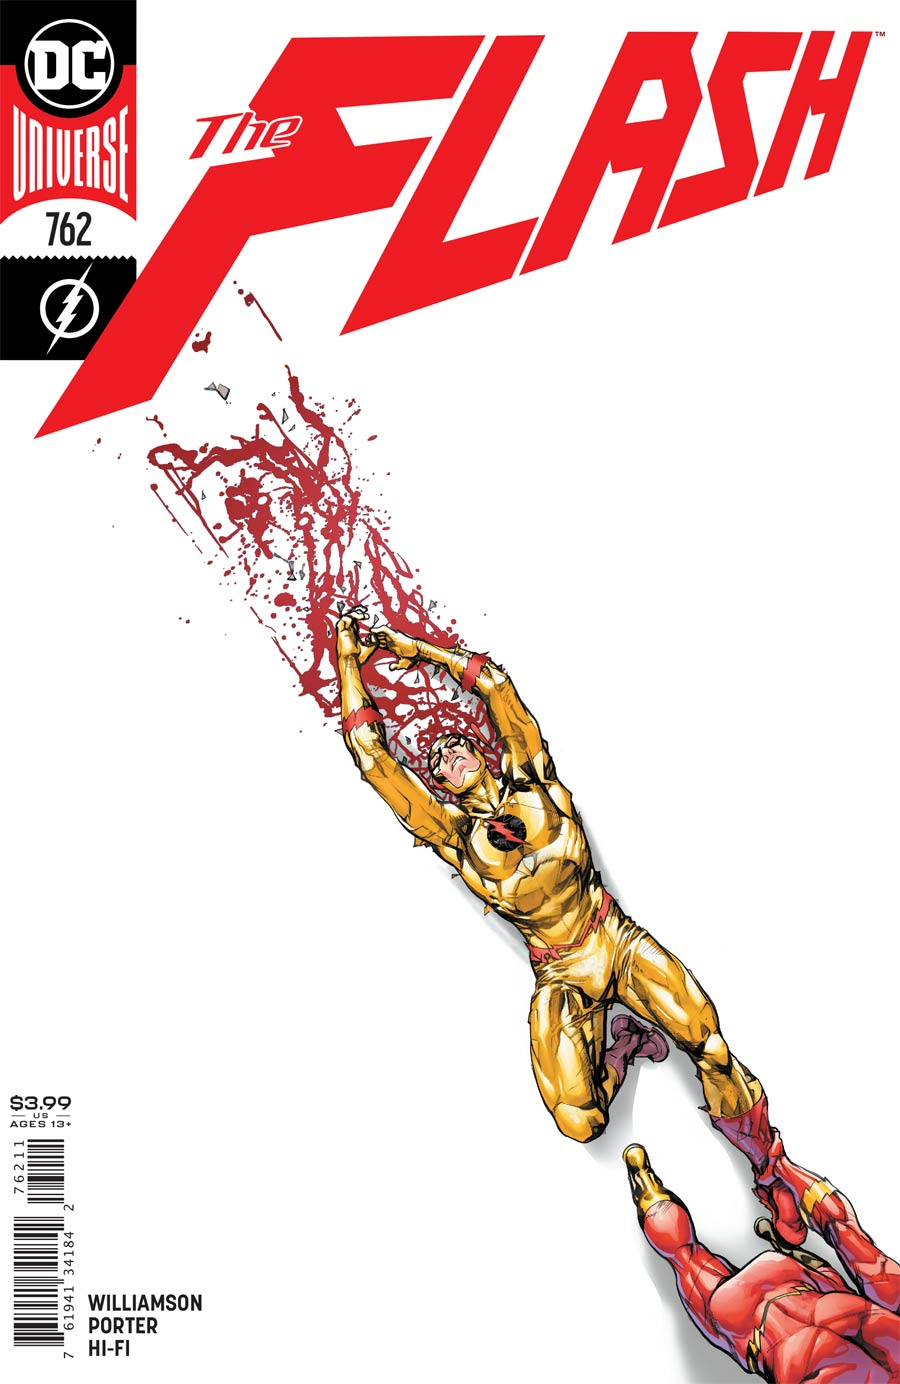 The Flash #762